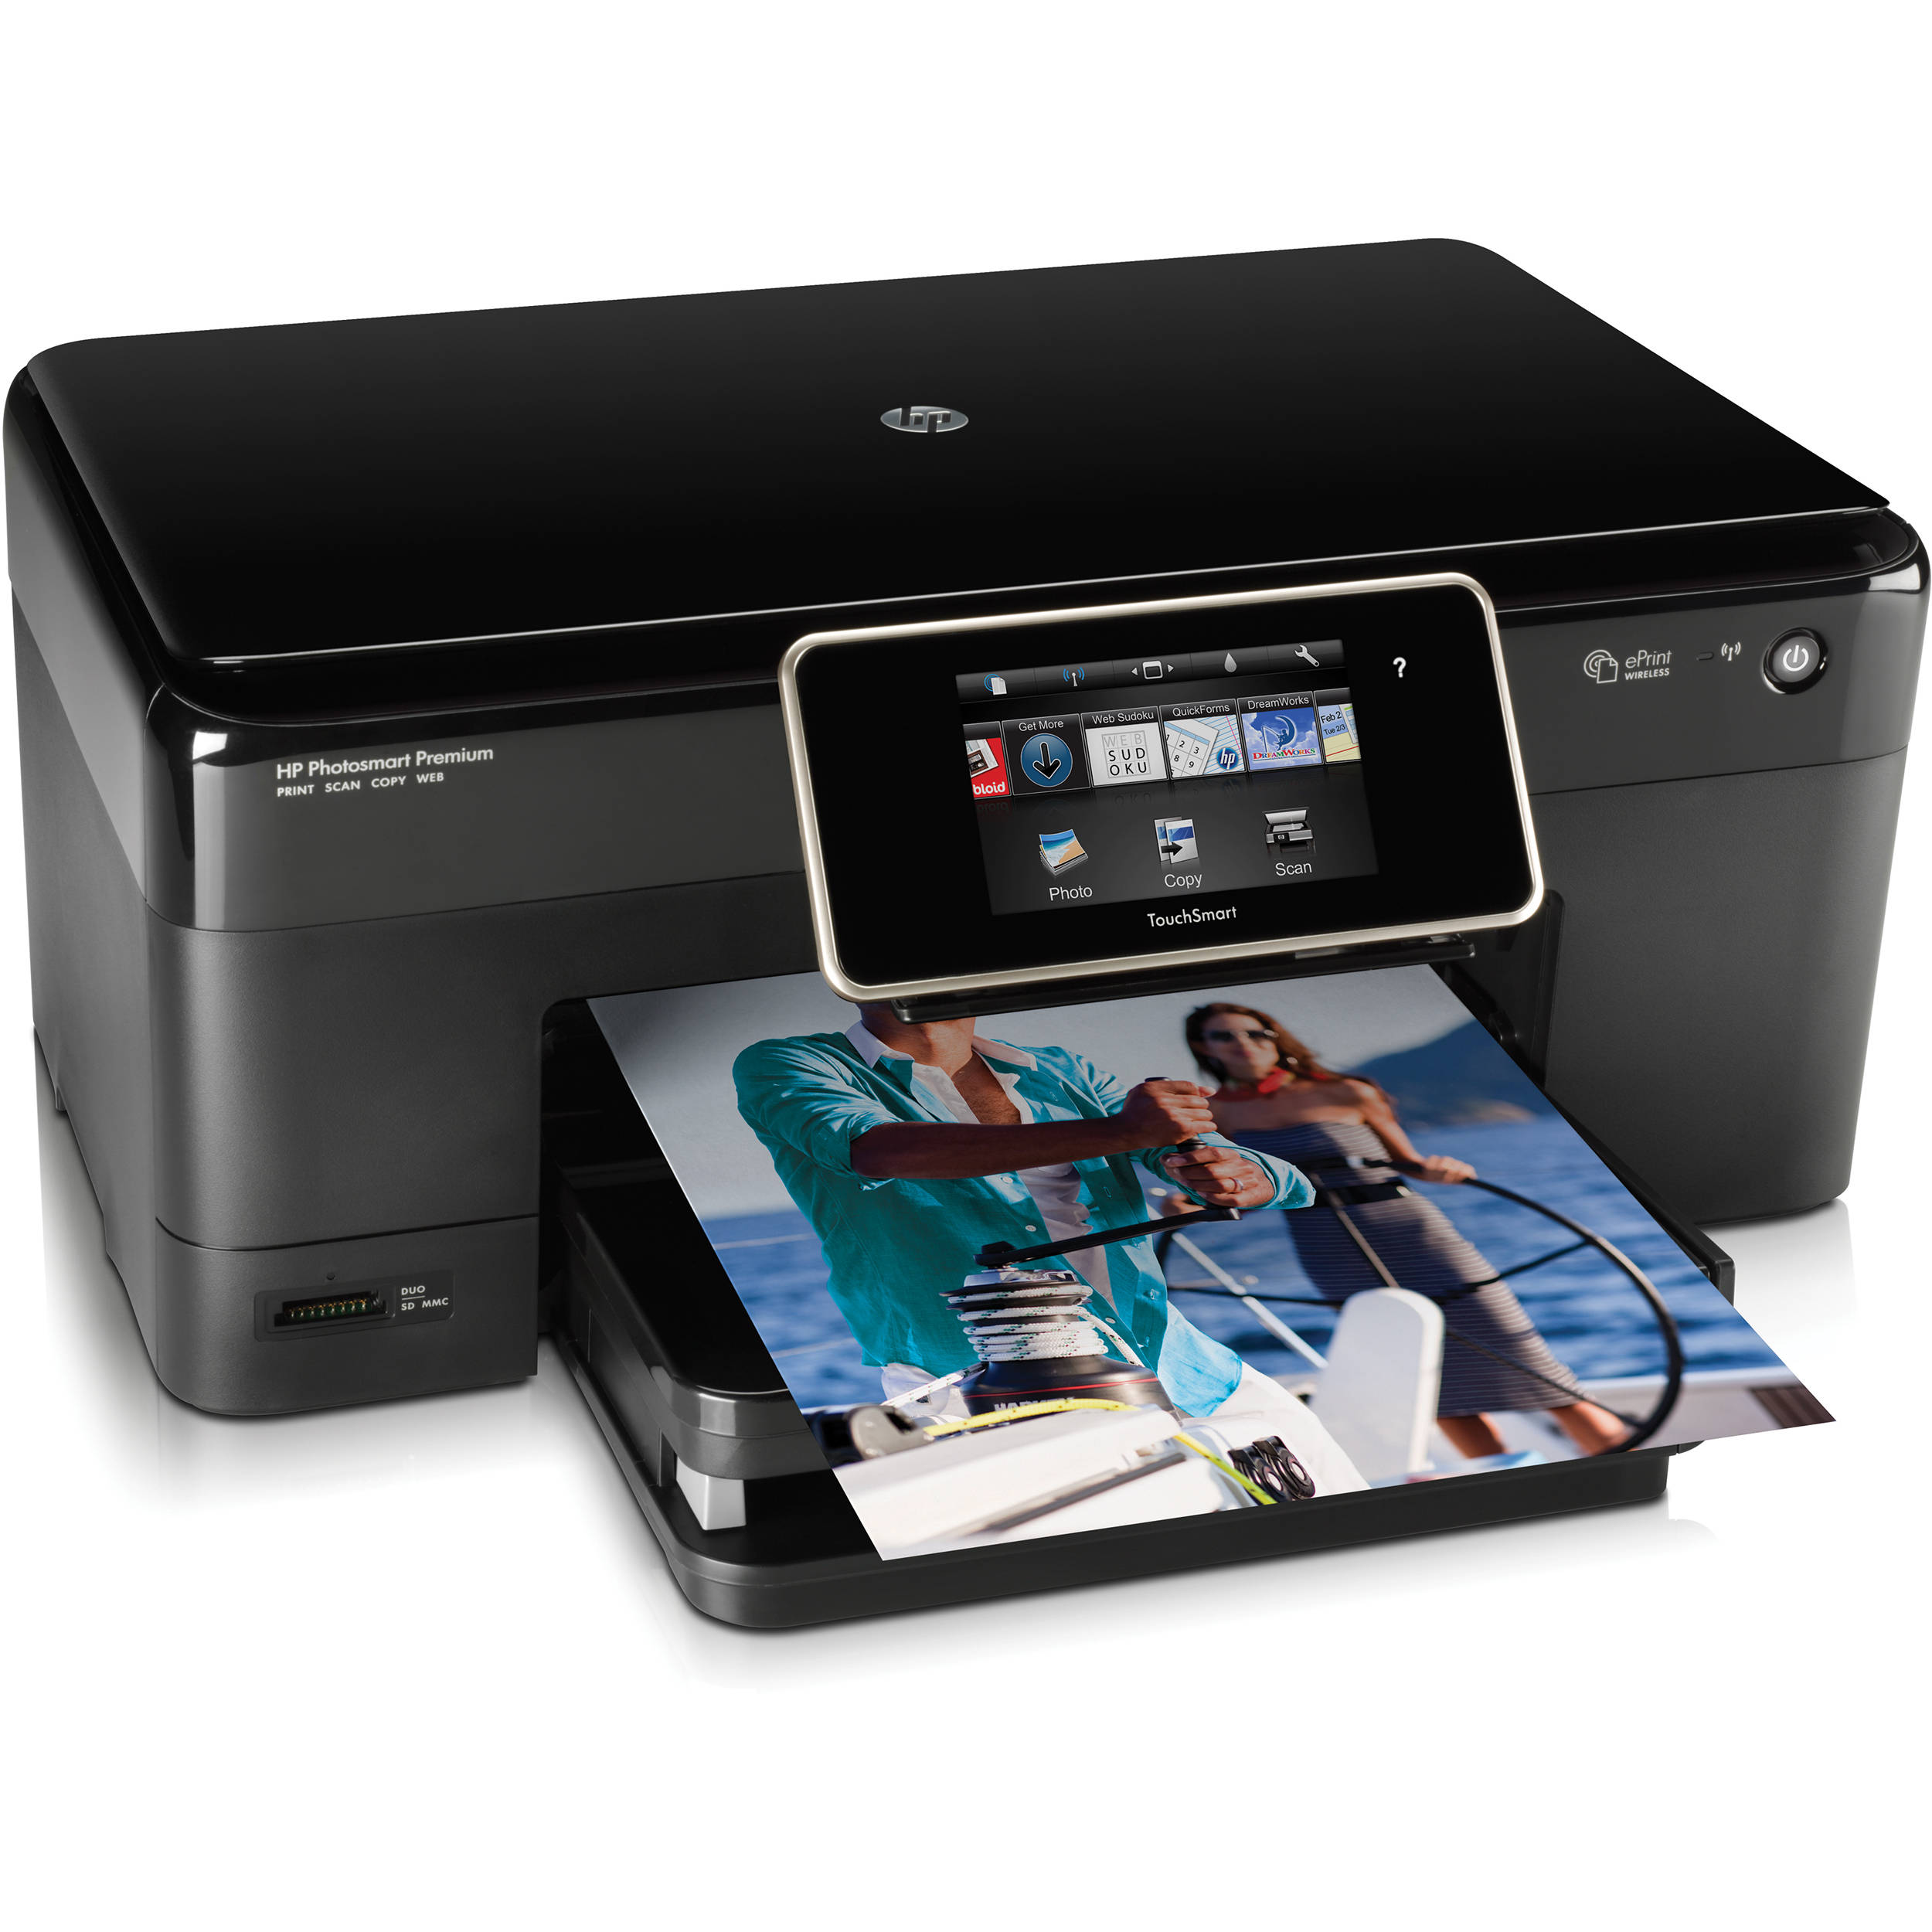 hp photosmart premium e all in one wireless inkjet cn503a b1h rh bhphotovideo com HP 310 Photosmart Support hp photosmart premium c310a user manual